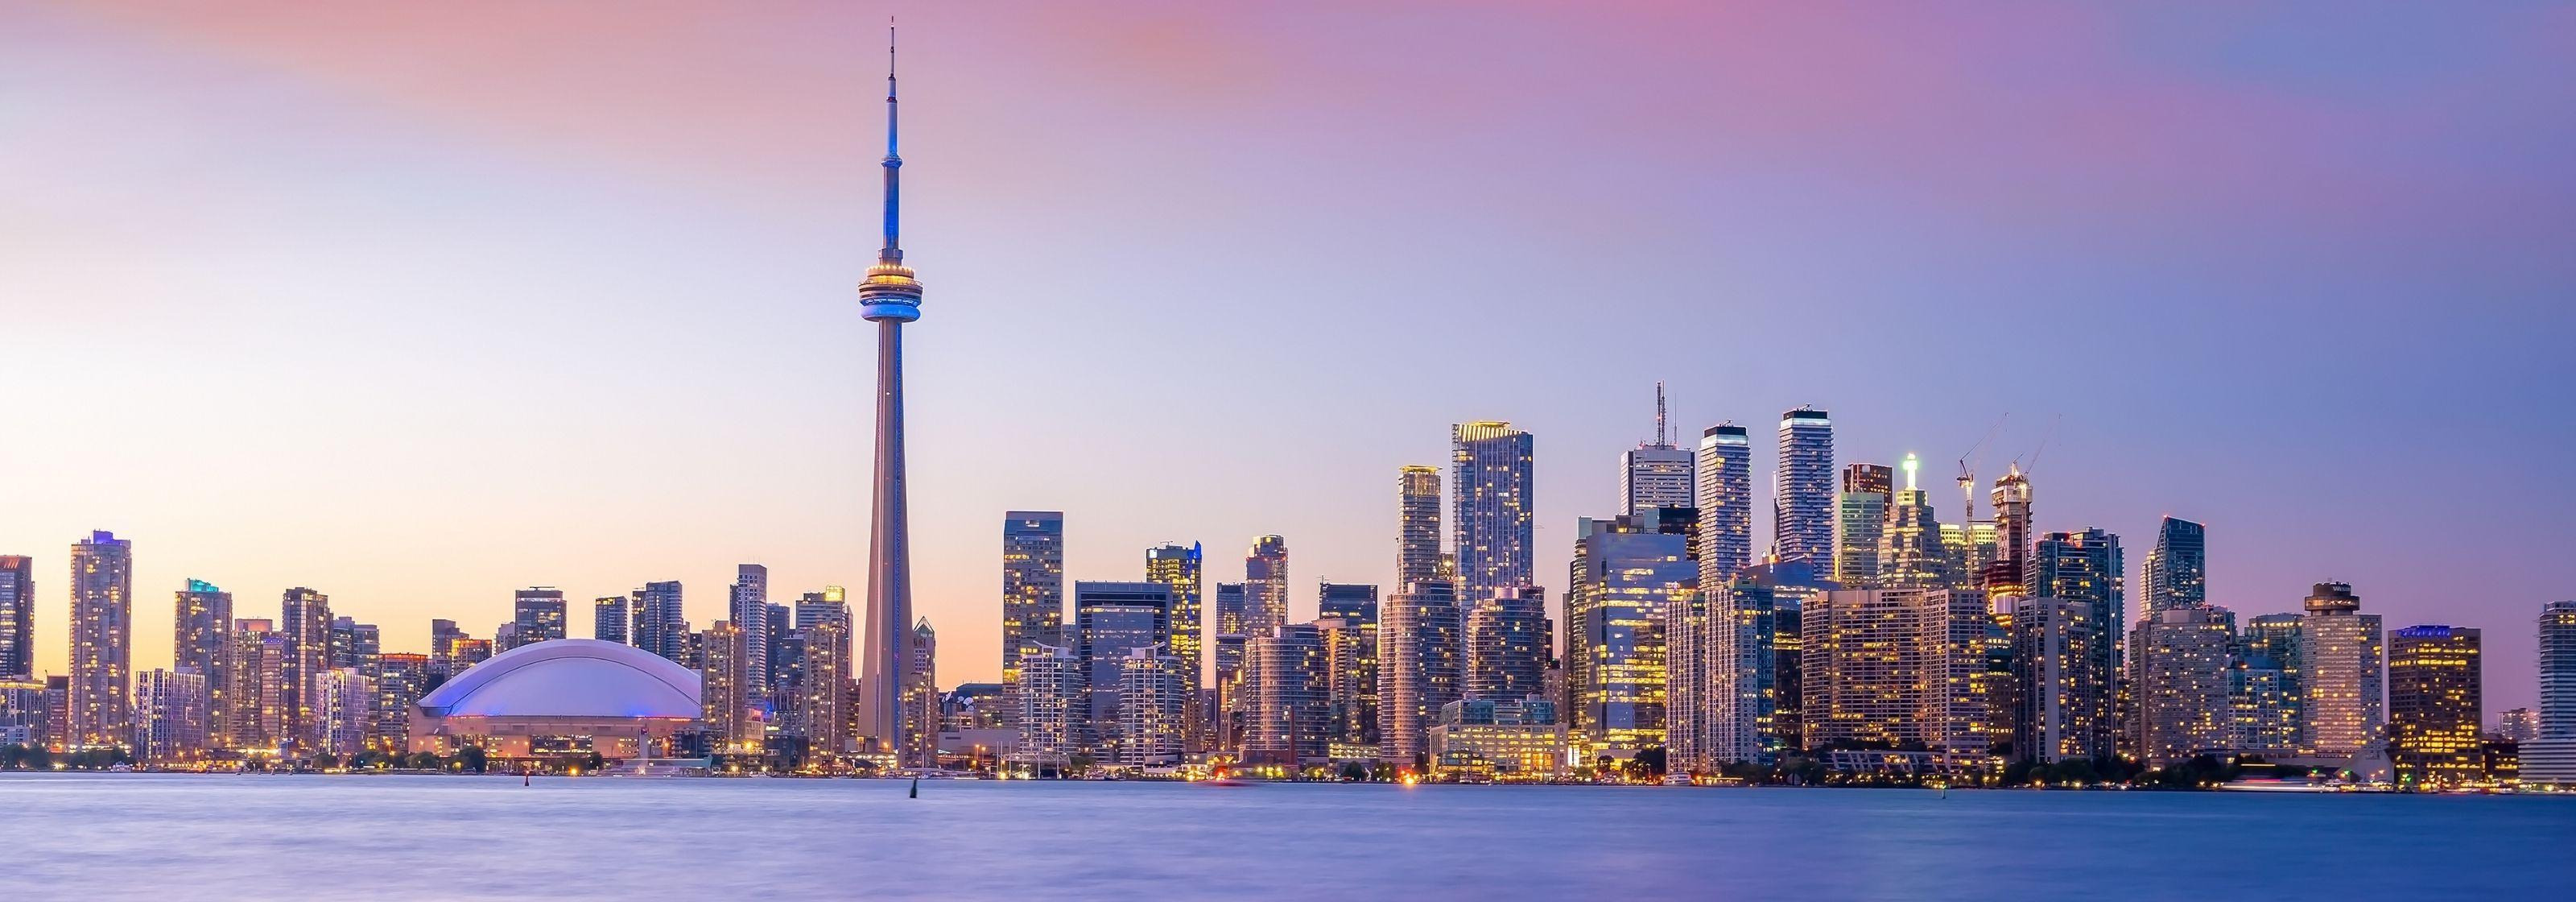 Things to do in Ontario